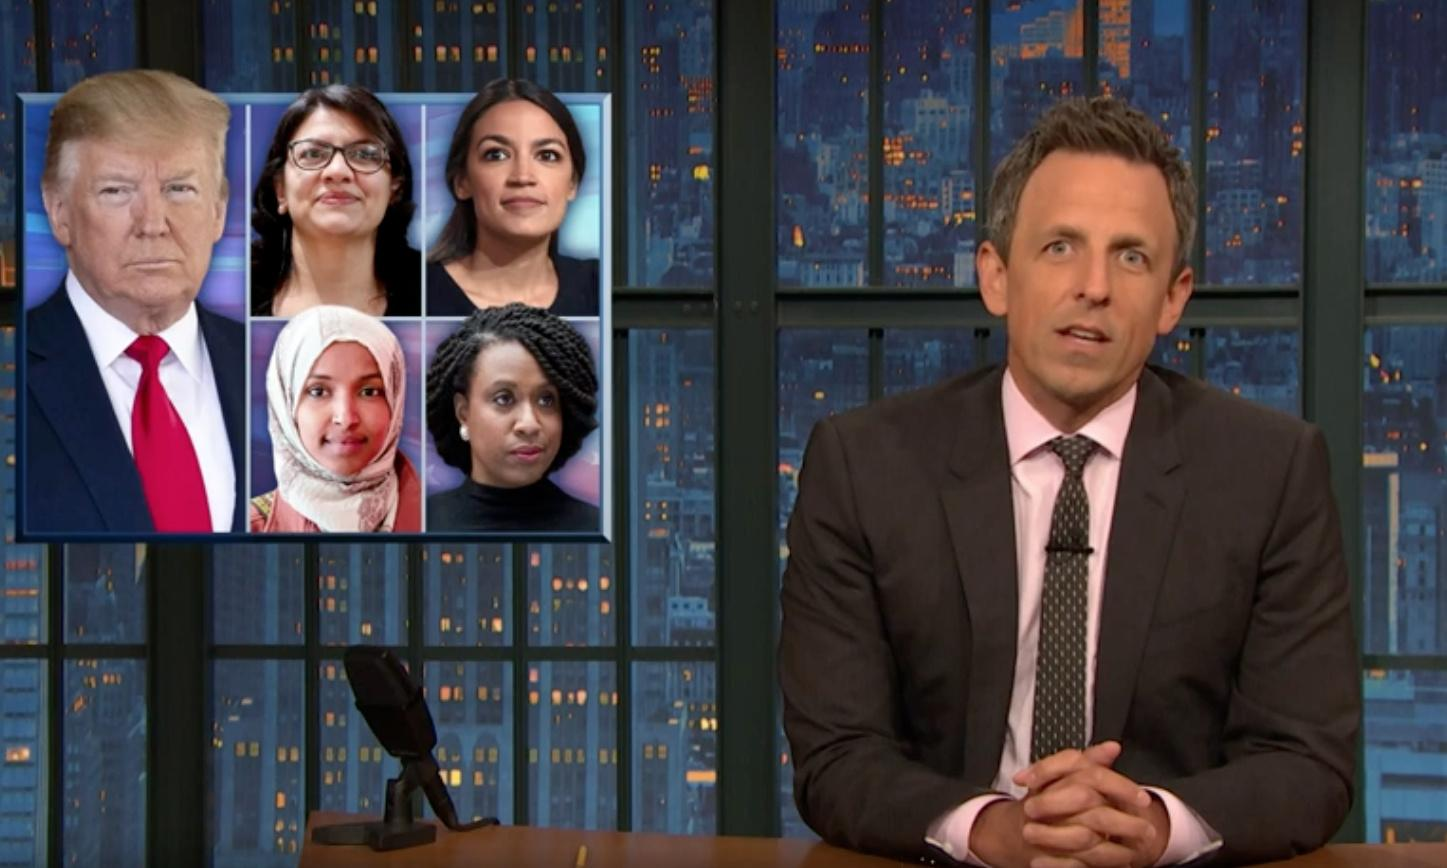 Seth Meyers to Trump: 'If their country is crime-infested then that's on you'